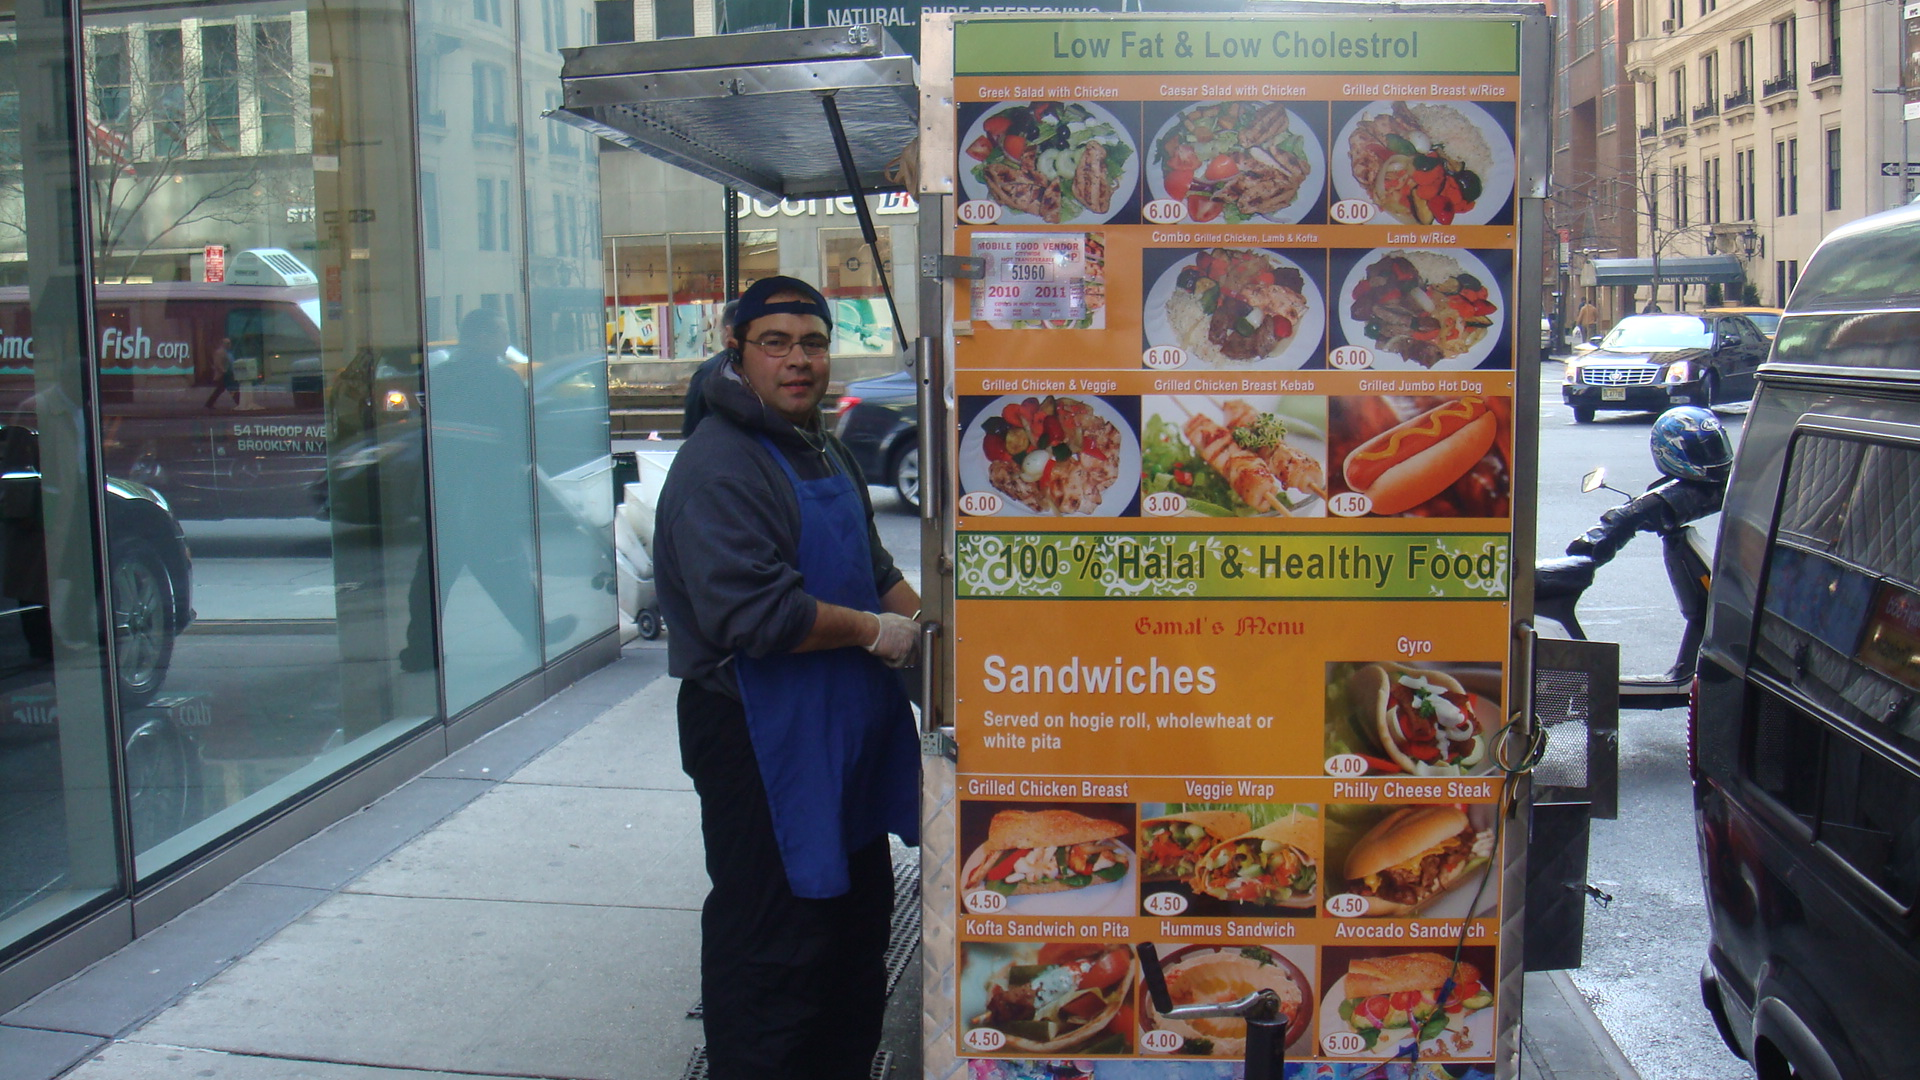 Joyce Kaufman: NYC&#039;s Halal Food Carts at the World Trade Center: &quot;We Lost&quot;